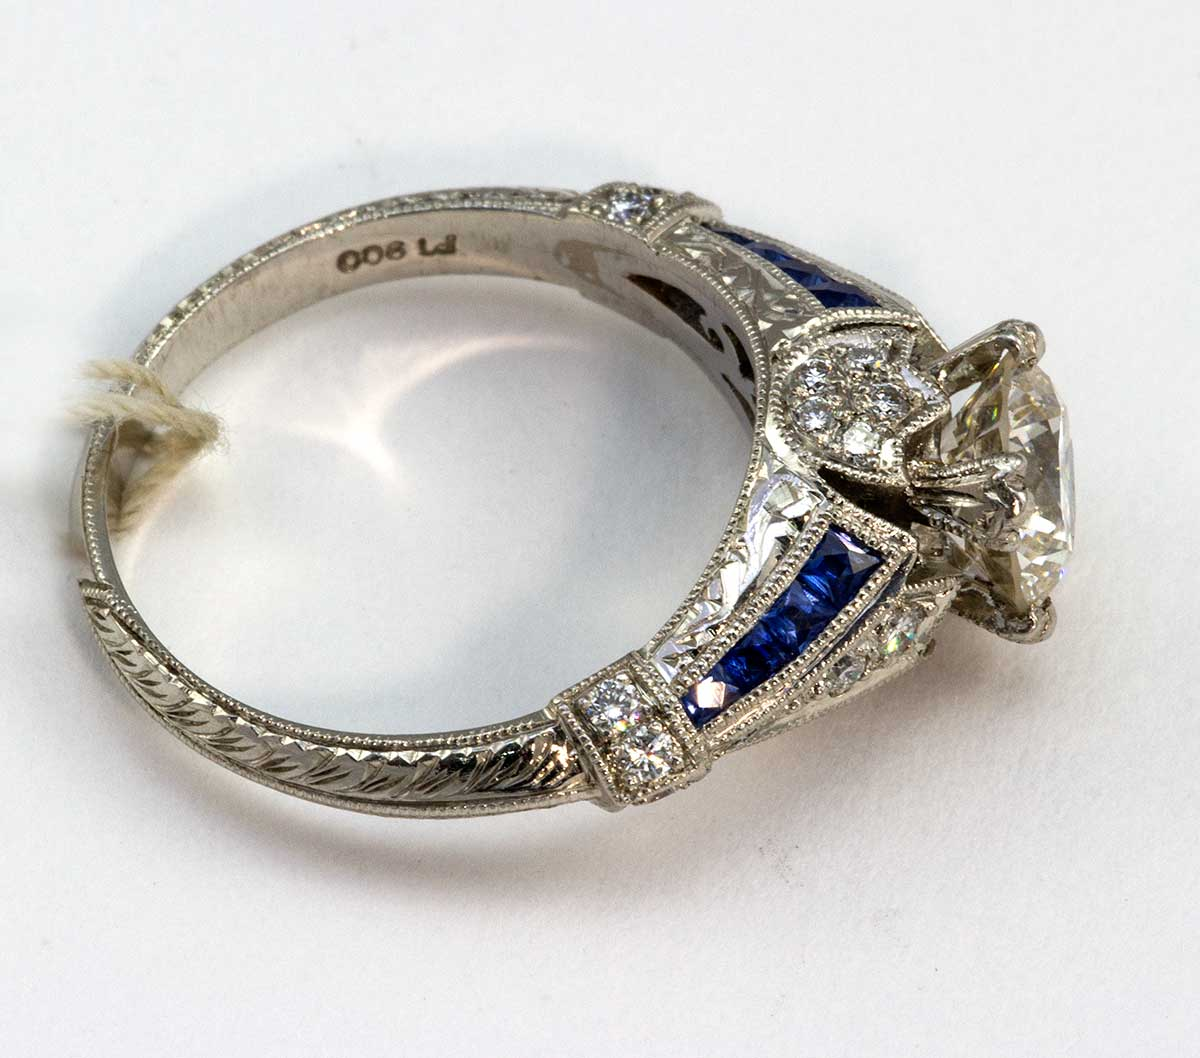 Platinum ring center stone weighs 1.25 SI1 and H color, with sapphires and diamonds on band